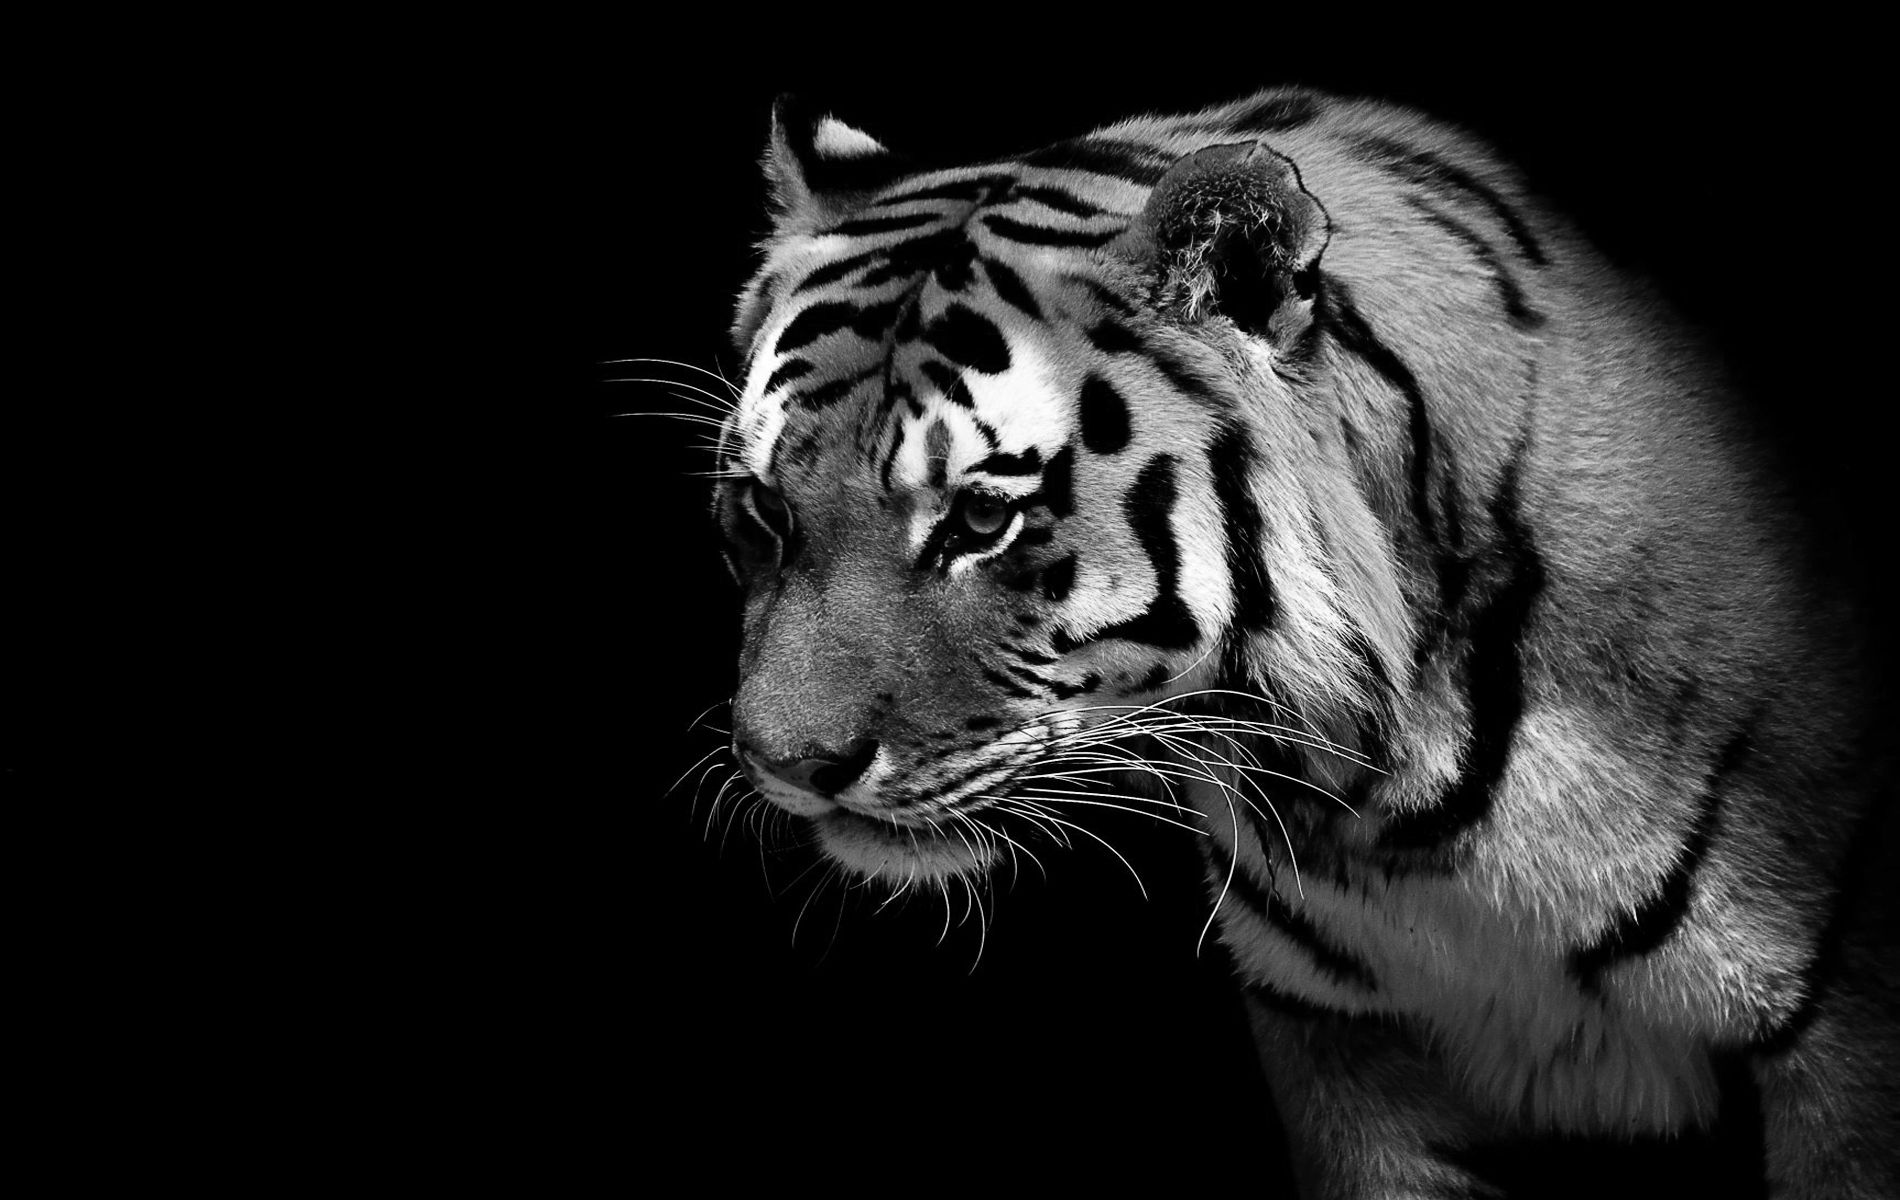 Tiger images black and white wallpaper inspiring ideas tiger